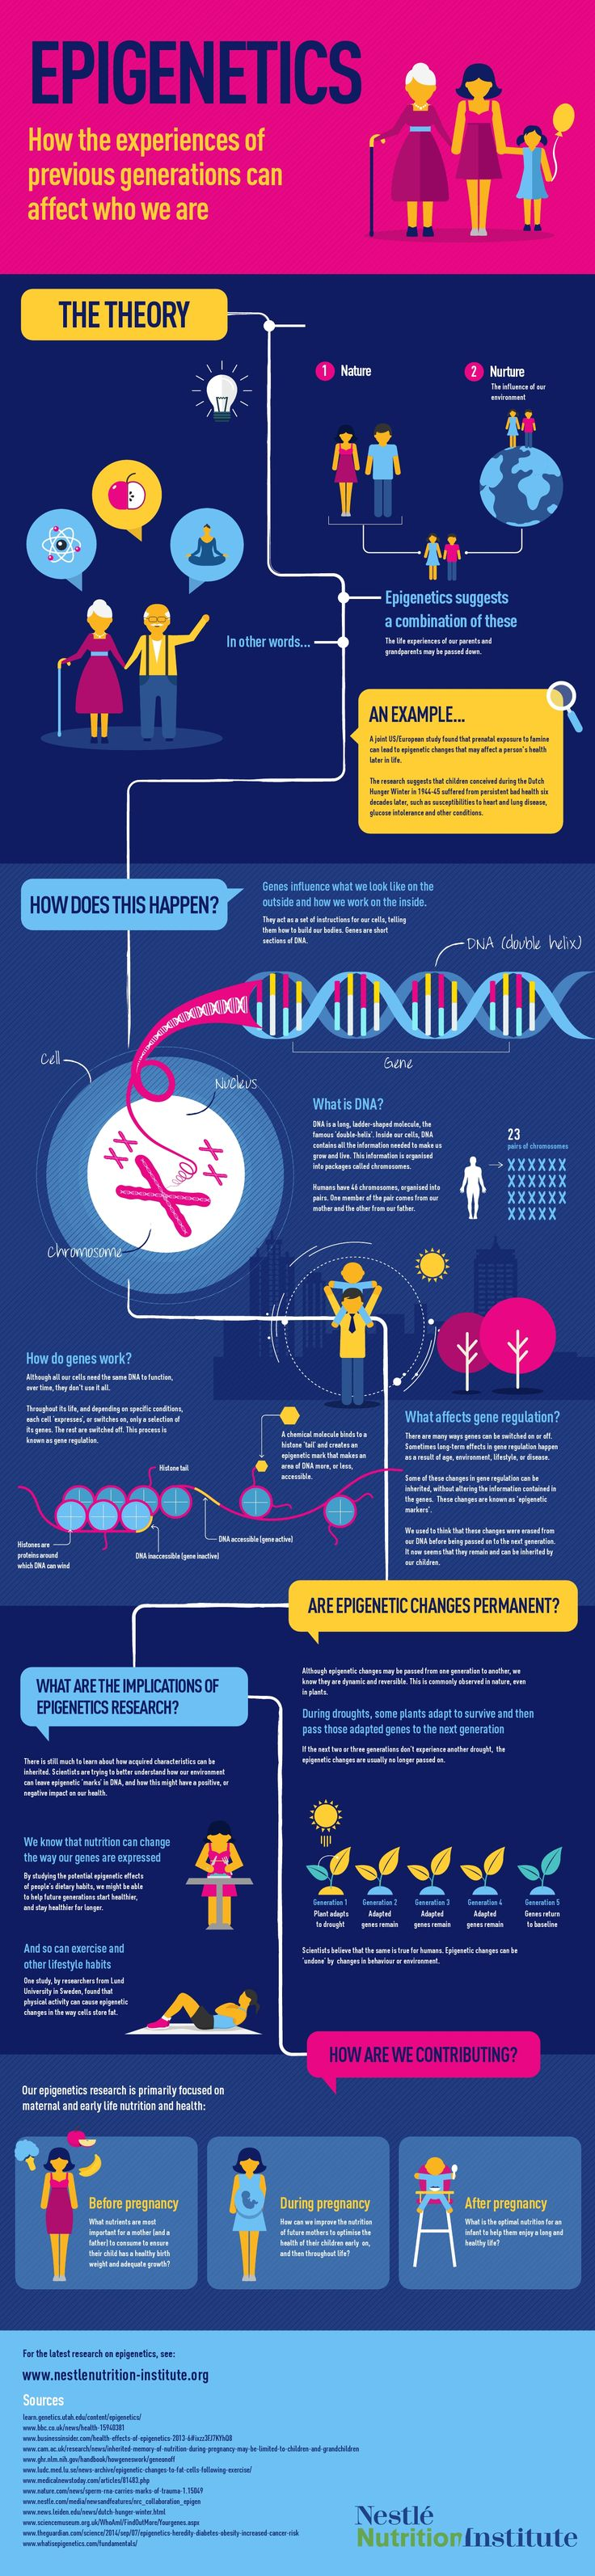 What is epigenetics? The science of how our inherited (nature) genes can be altered through lifestyle (nurture) -- including nutrition, exercise, stress, and environment.